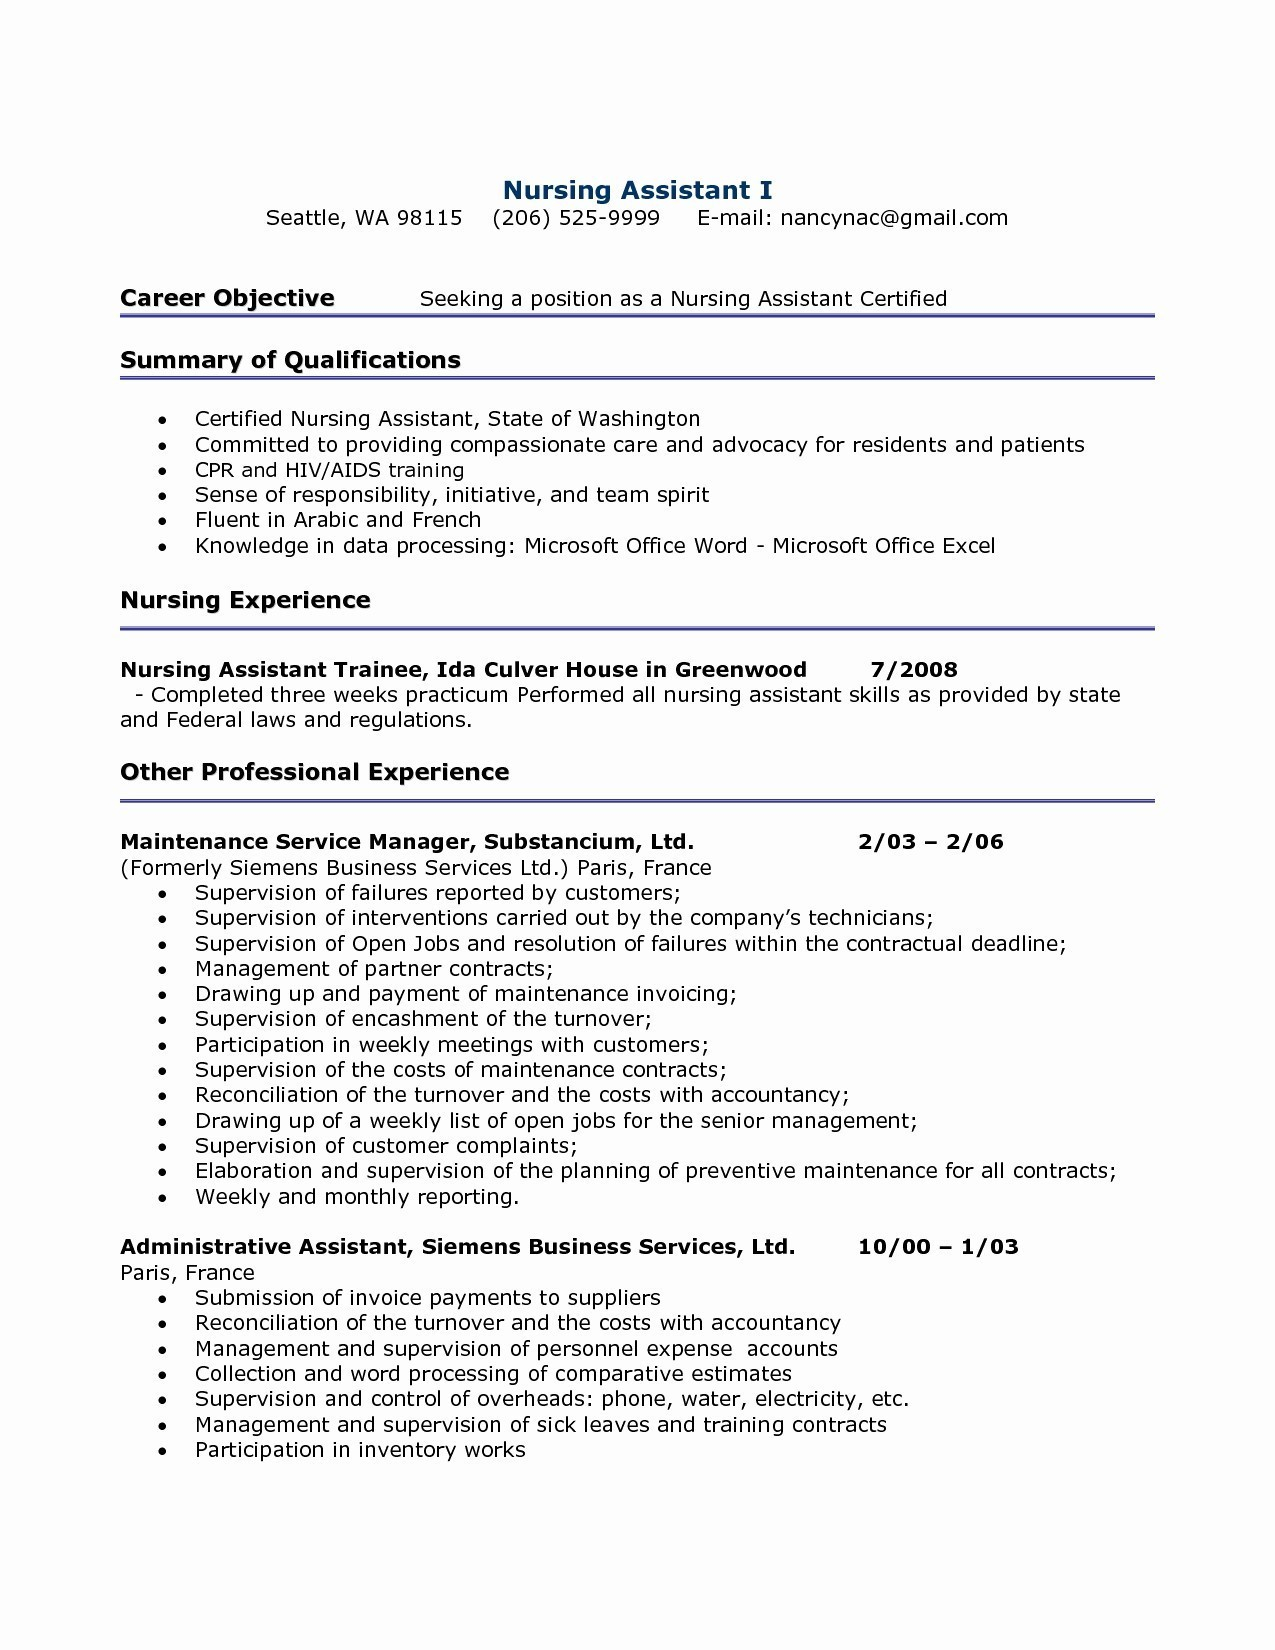 Professional Cover Letter Template - Fice Resume Templates Unique Resume New Cover Letter Template